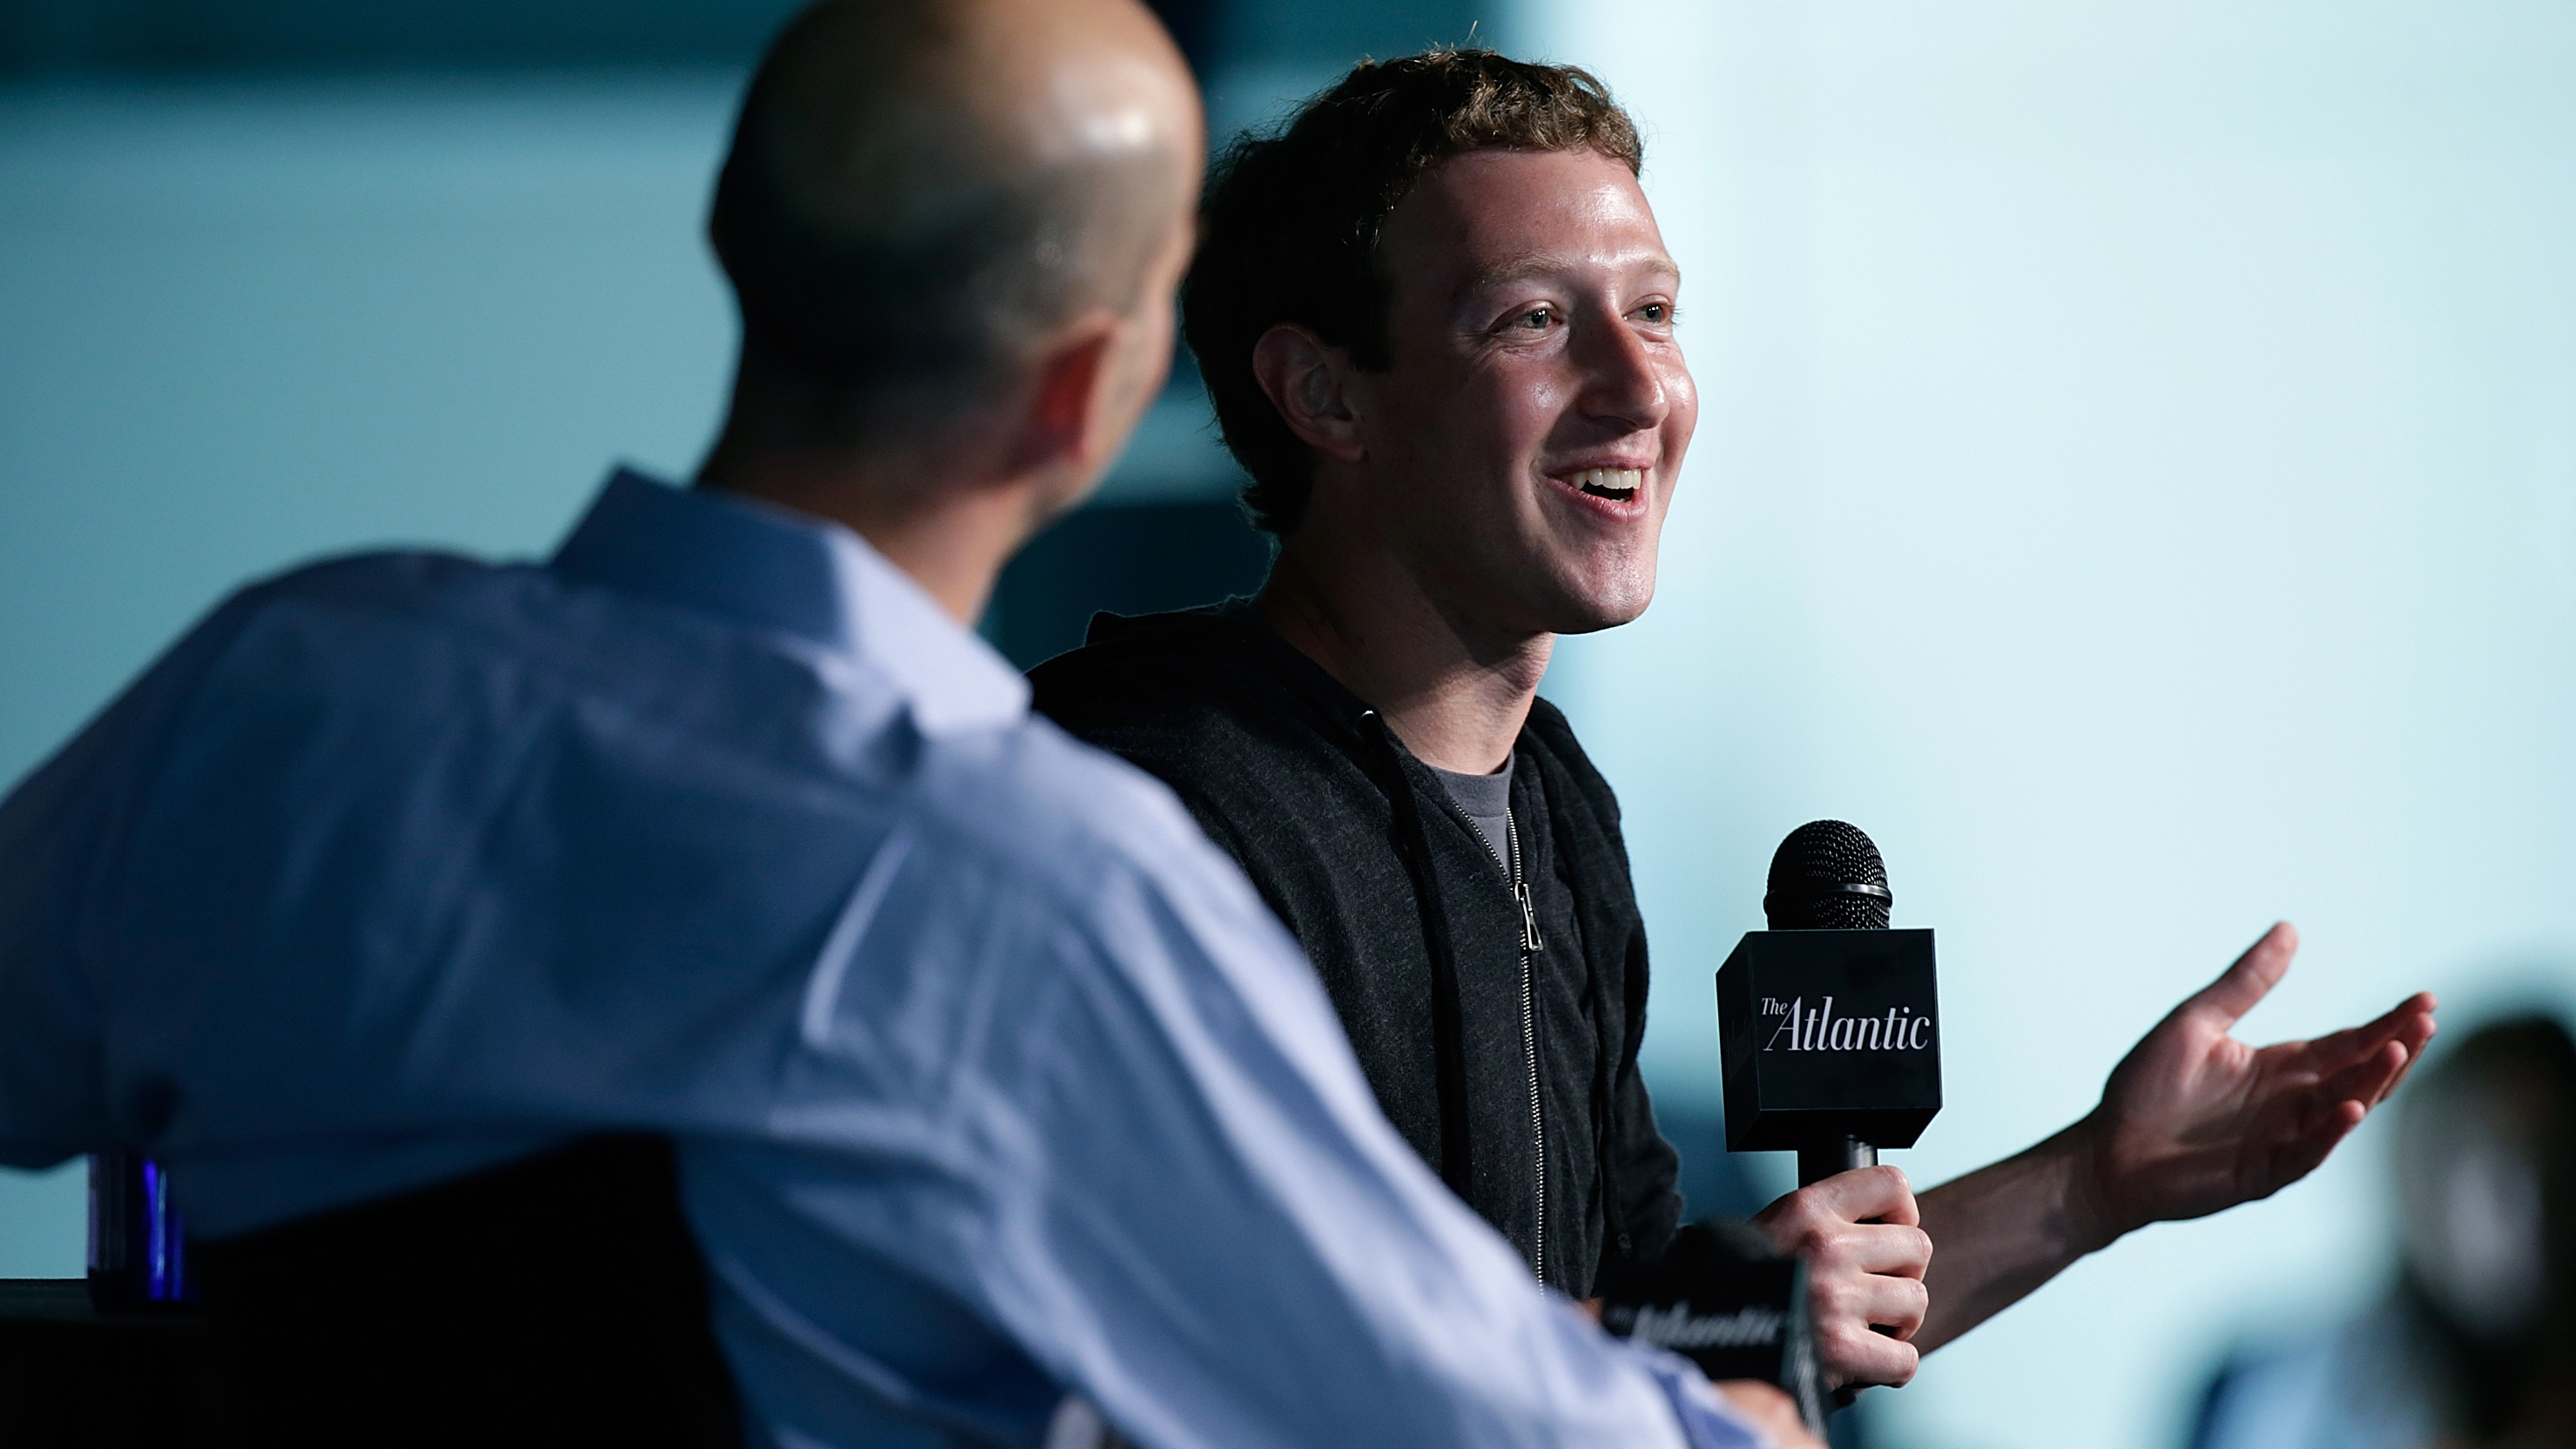 Facebook At 10: Amid Doubters, Company Eyes Next Growth Phase